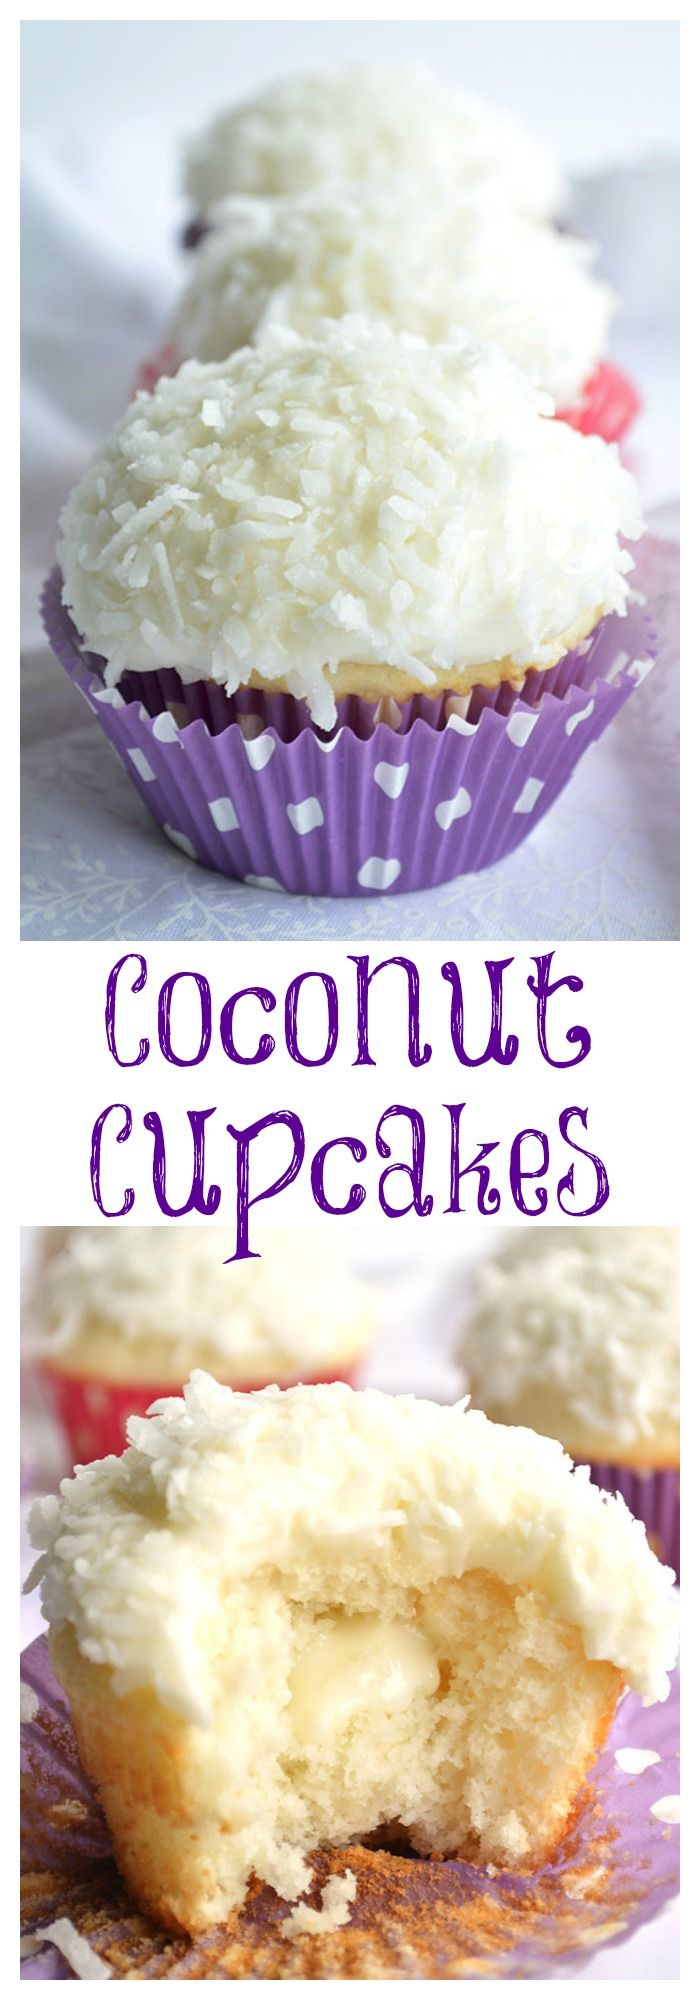 Coconut Cupcakes. A moist white coconut cake with a creamy coconut filling and coconut frosting on top! A perfect Holiday treat or Christmas party addition!